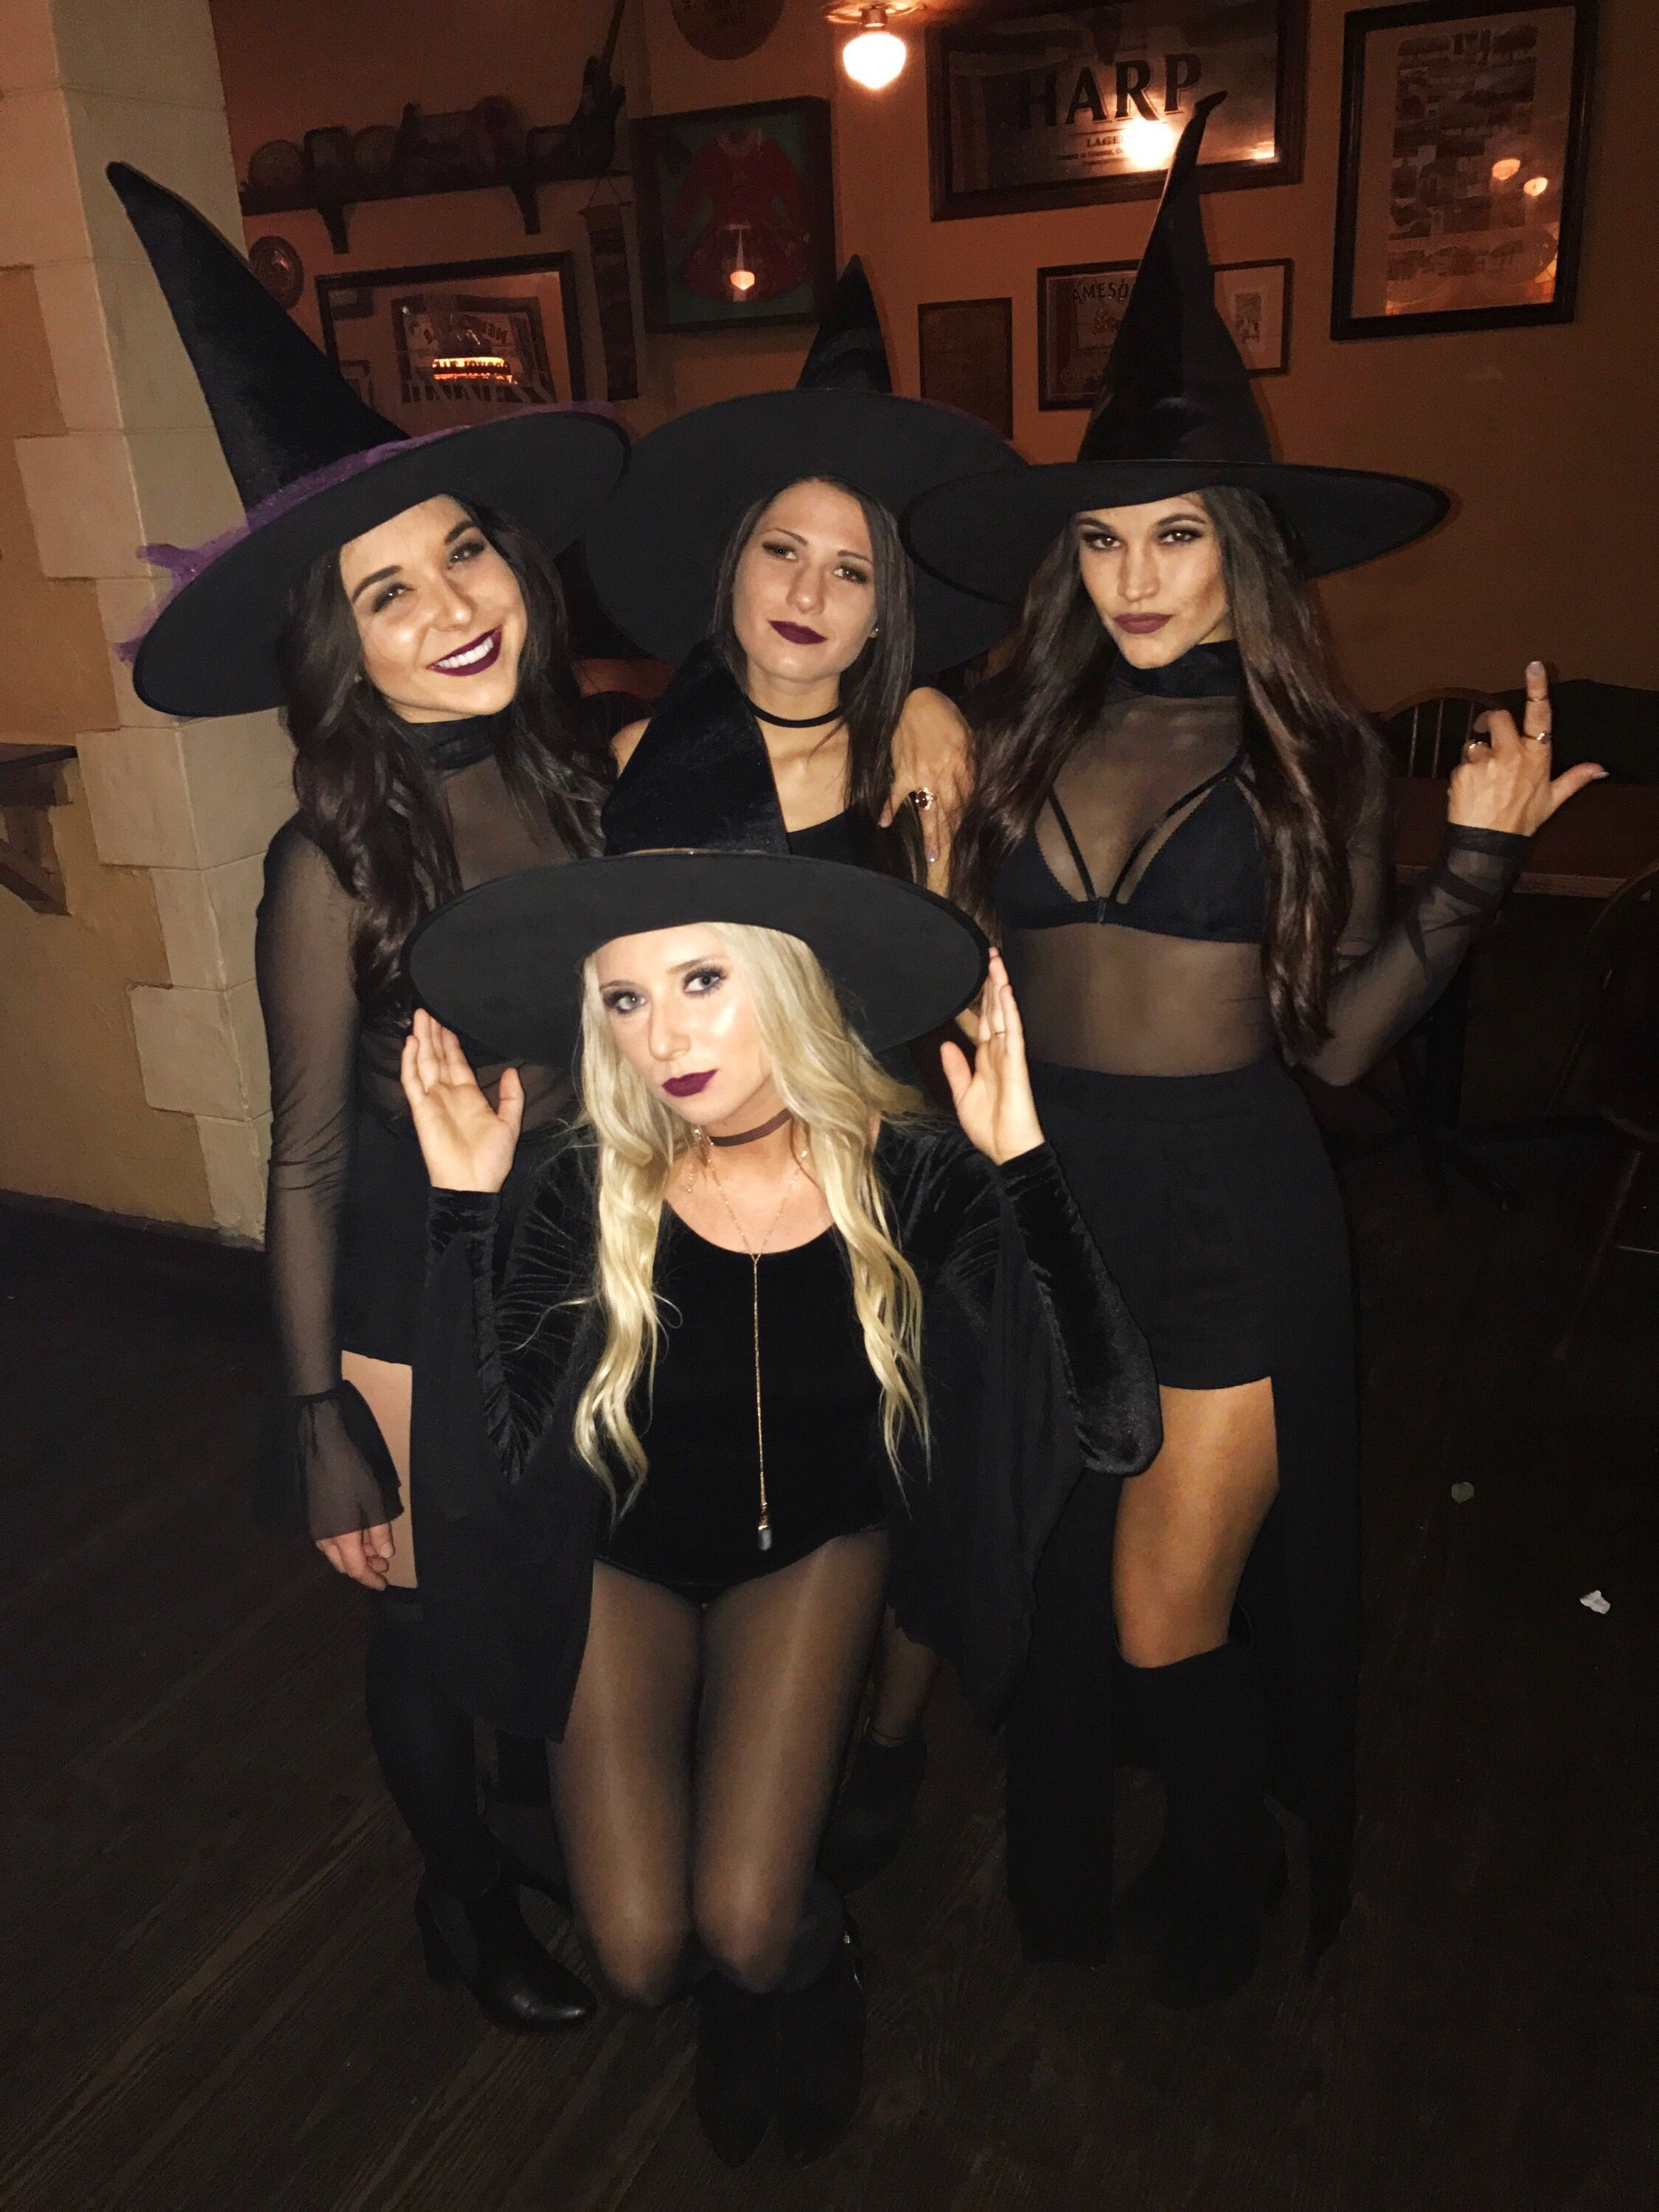 Diy Sexy Witch Costume : witch, costume, Group, Costume, Witches, Witch, Halloween, Costume,, Costumes,, Outfits